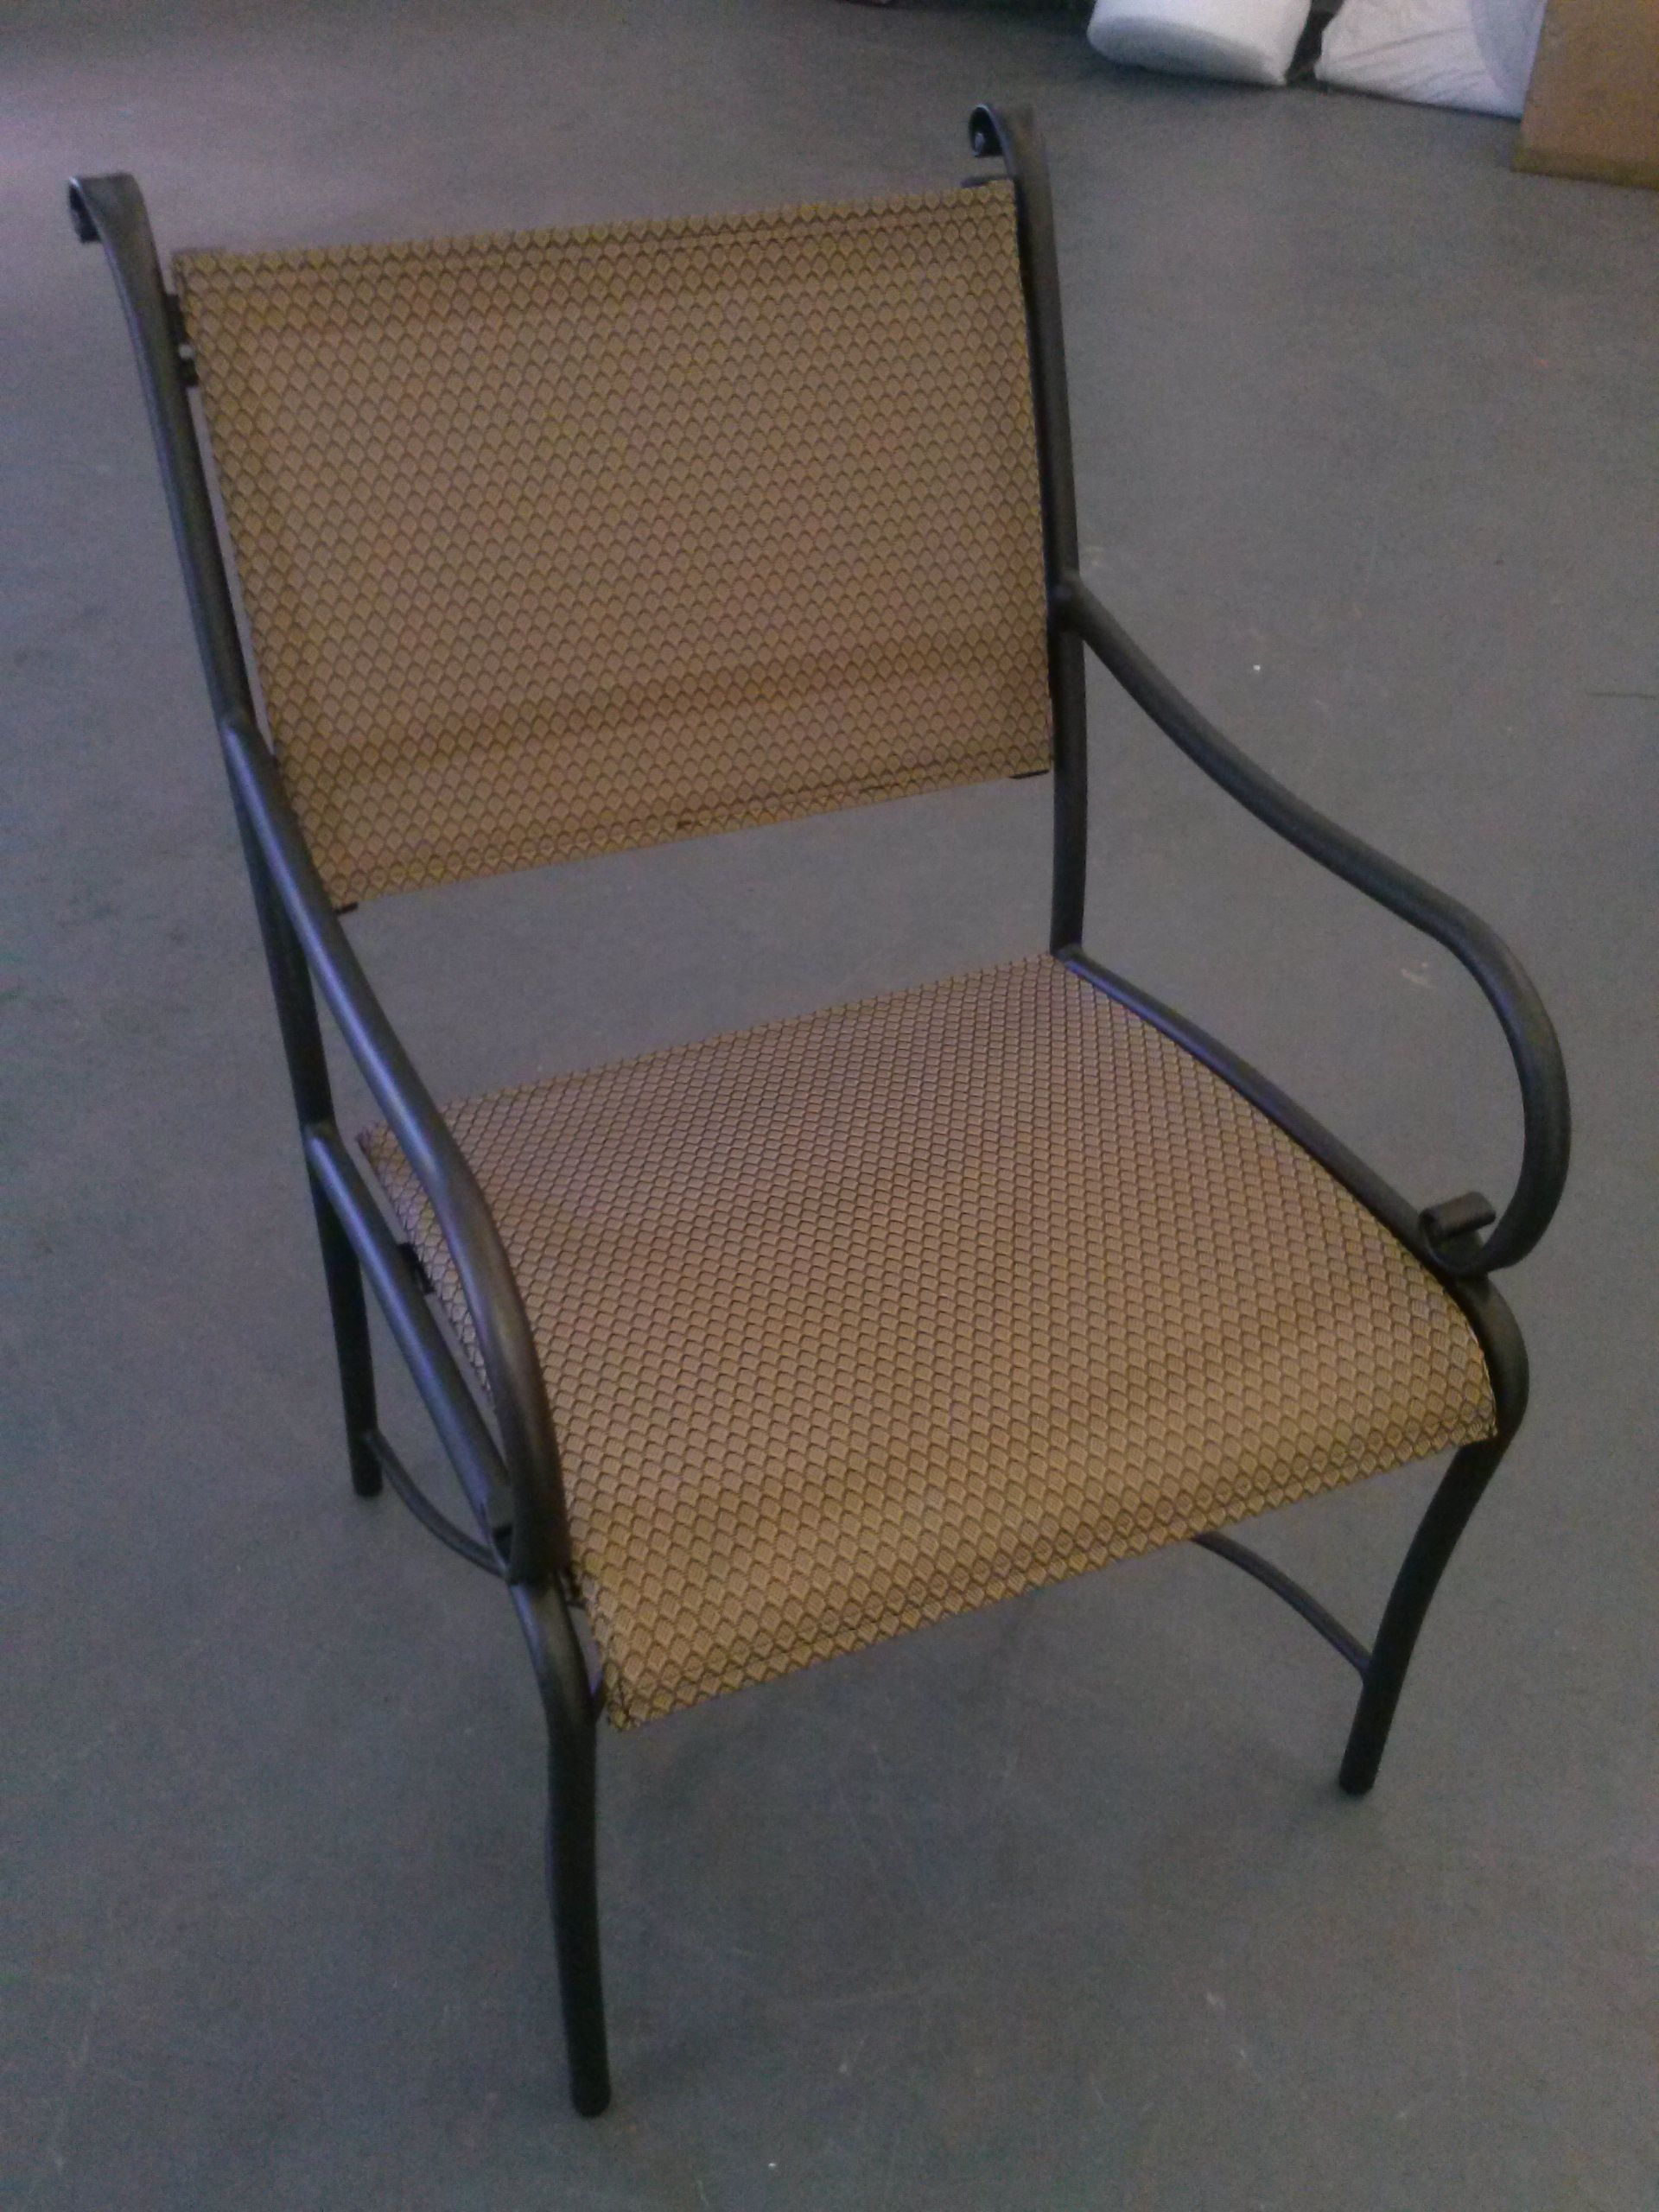 Repair Garden Chairs Yamaha Wheelchair Repaired Outdoor Chair With New Sling And Powder Coating Furniture